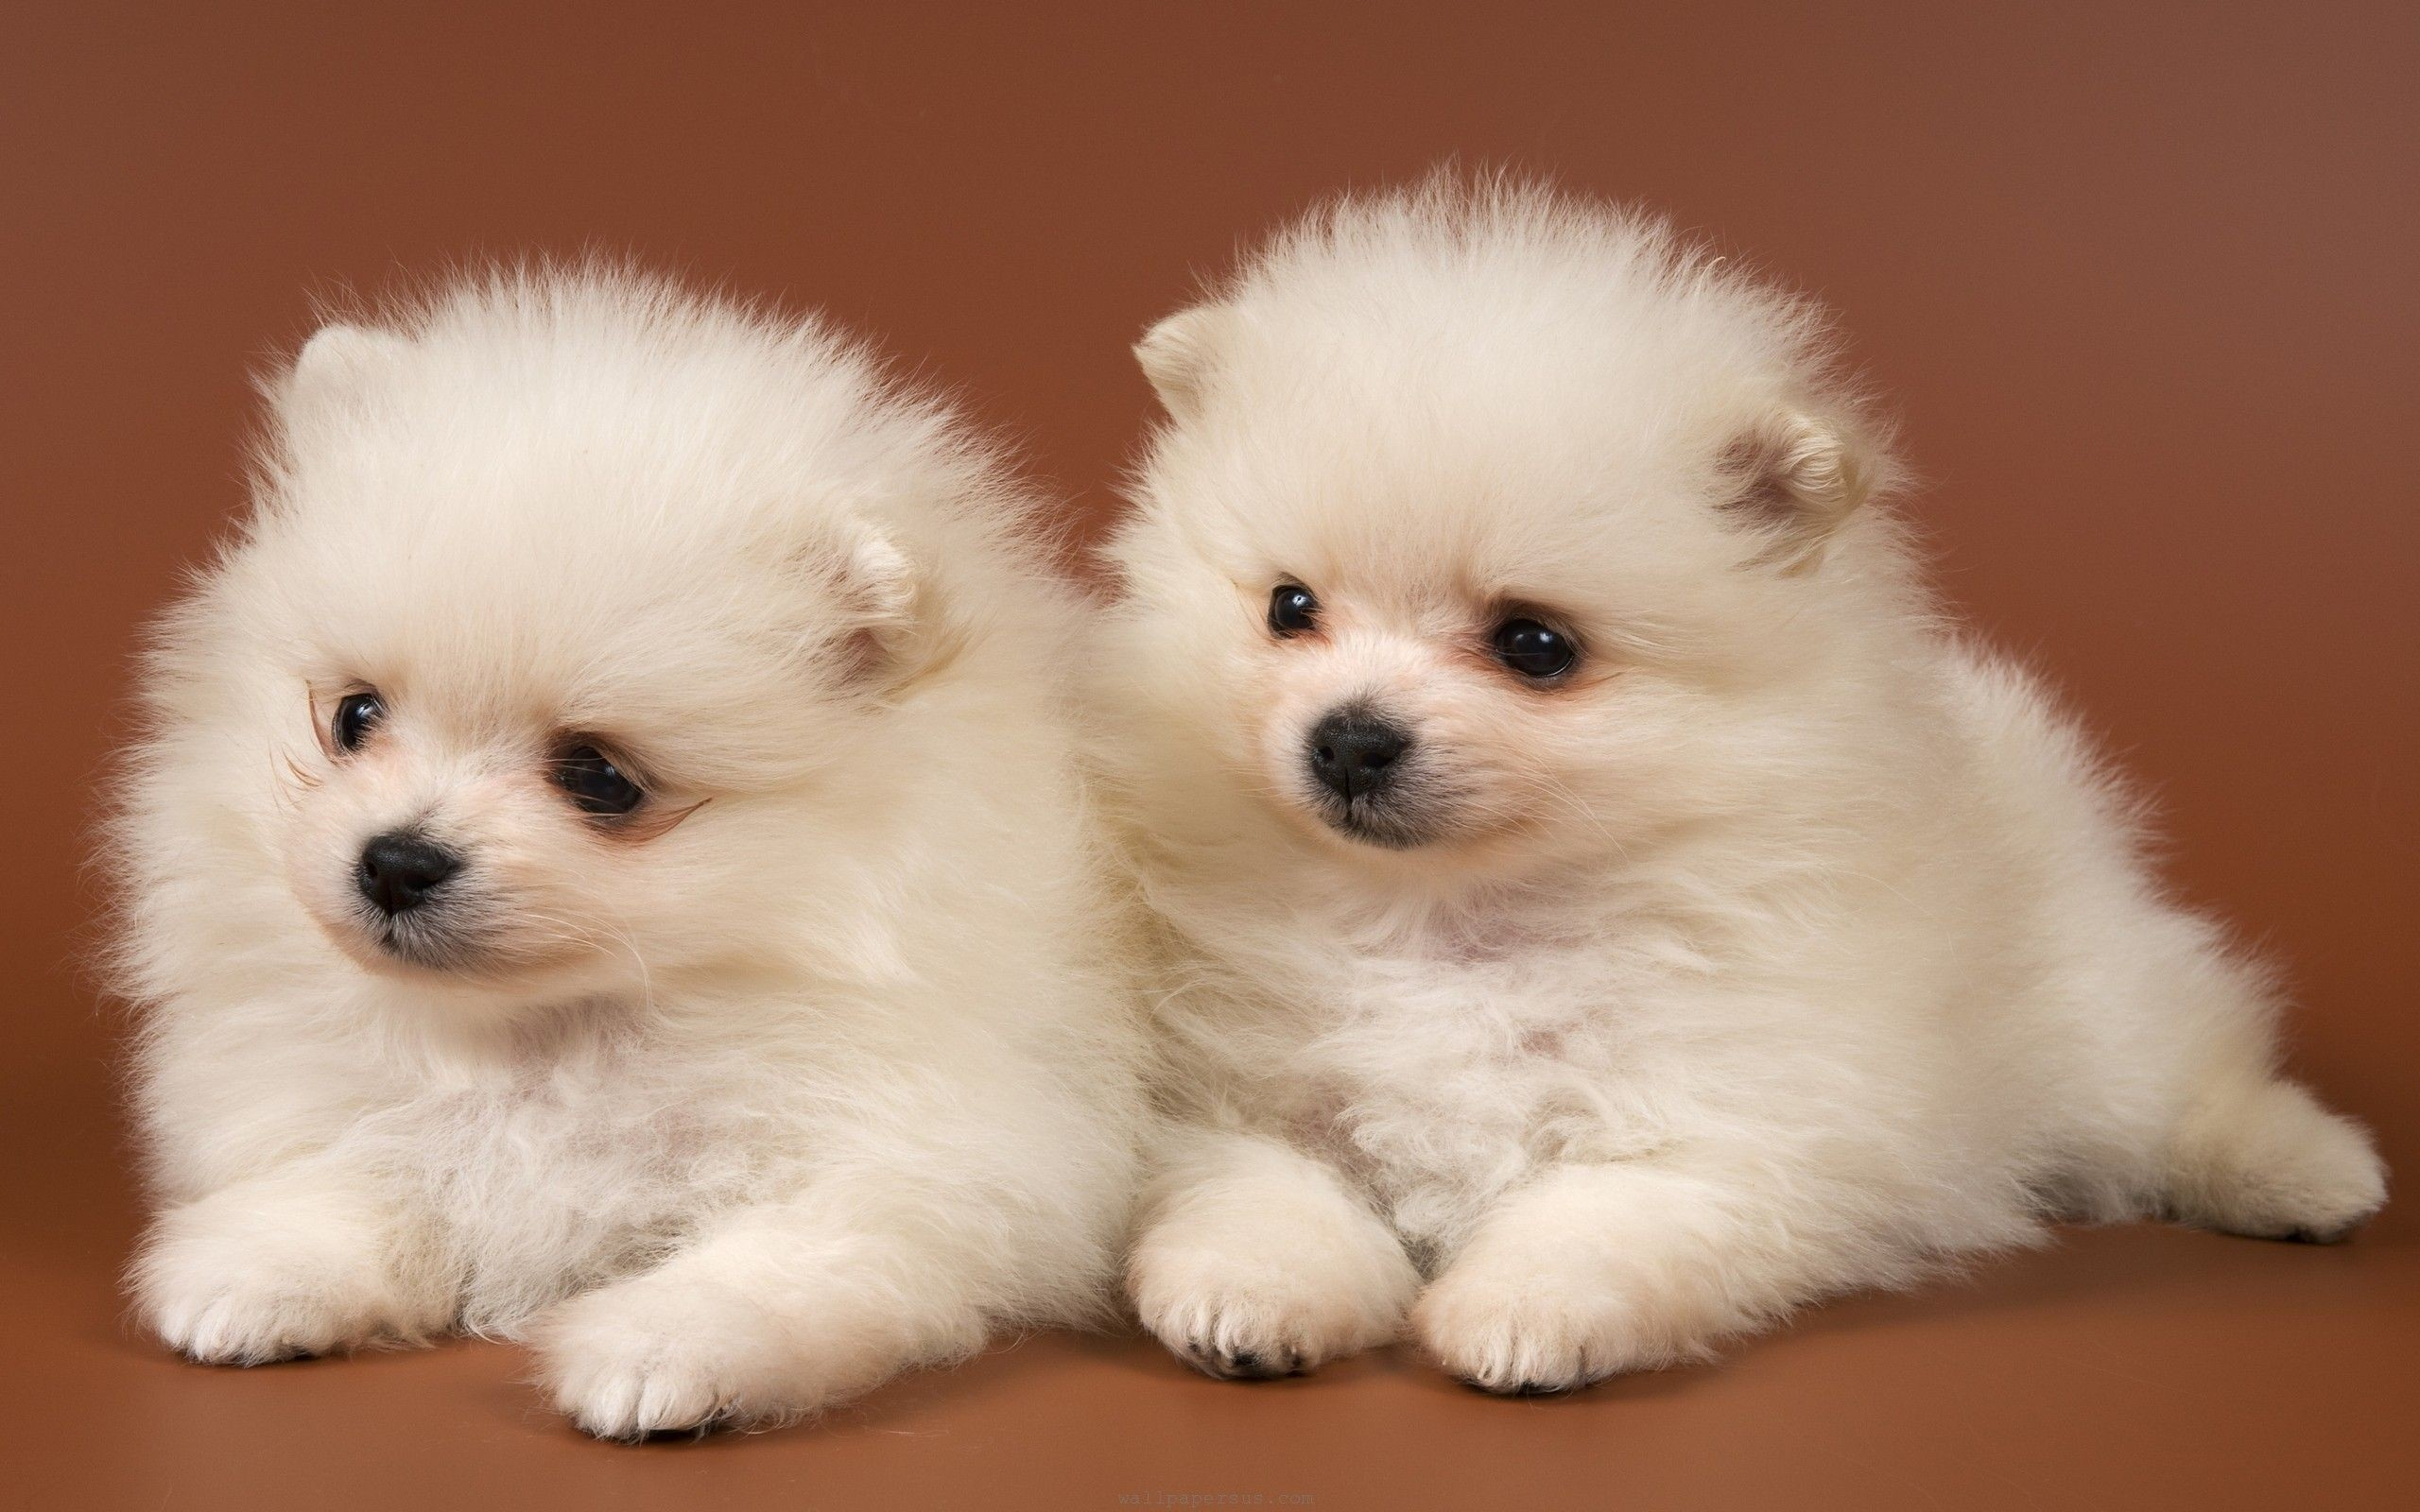 2560x1600 ... Cute Dogs And Puppies Wallpapers Wallpaper Cave Cute Puppy Wallpaper · Download